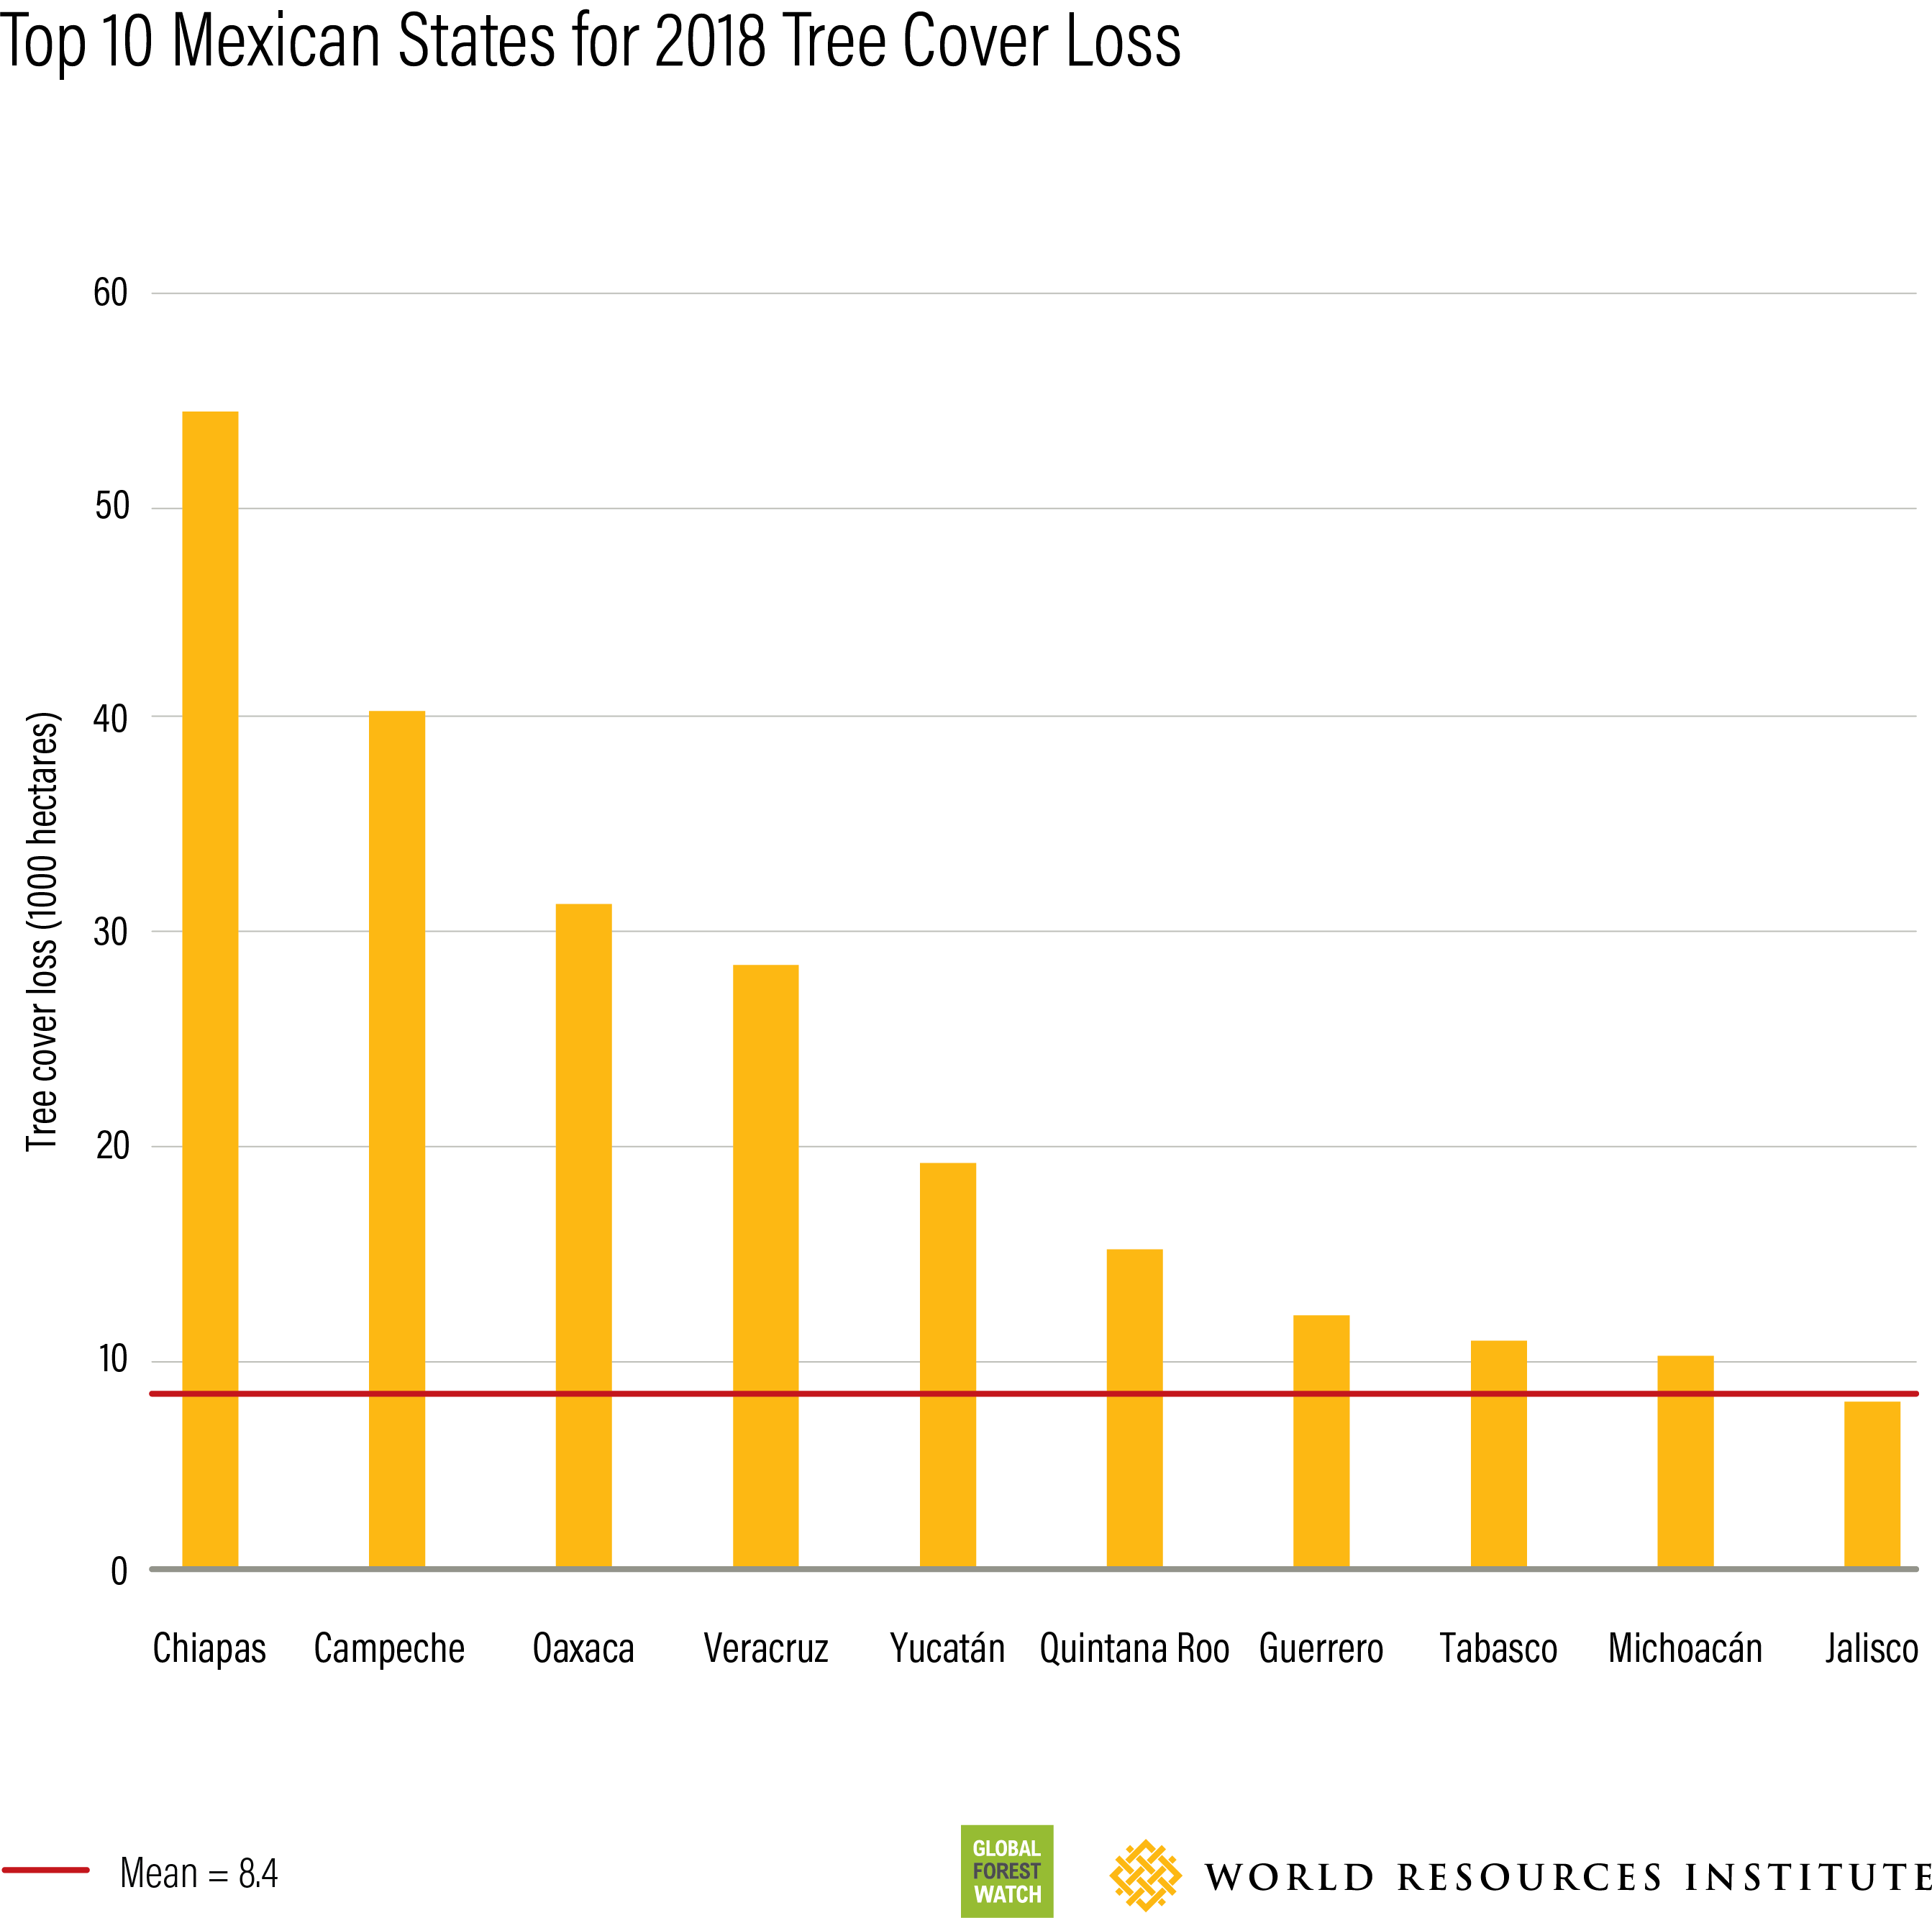 tree cover loss in top 10 mexican states